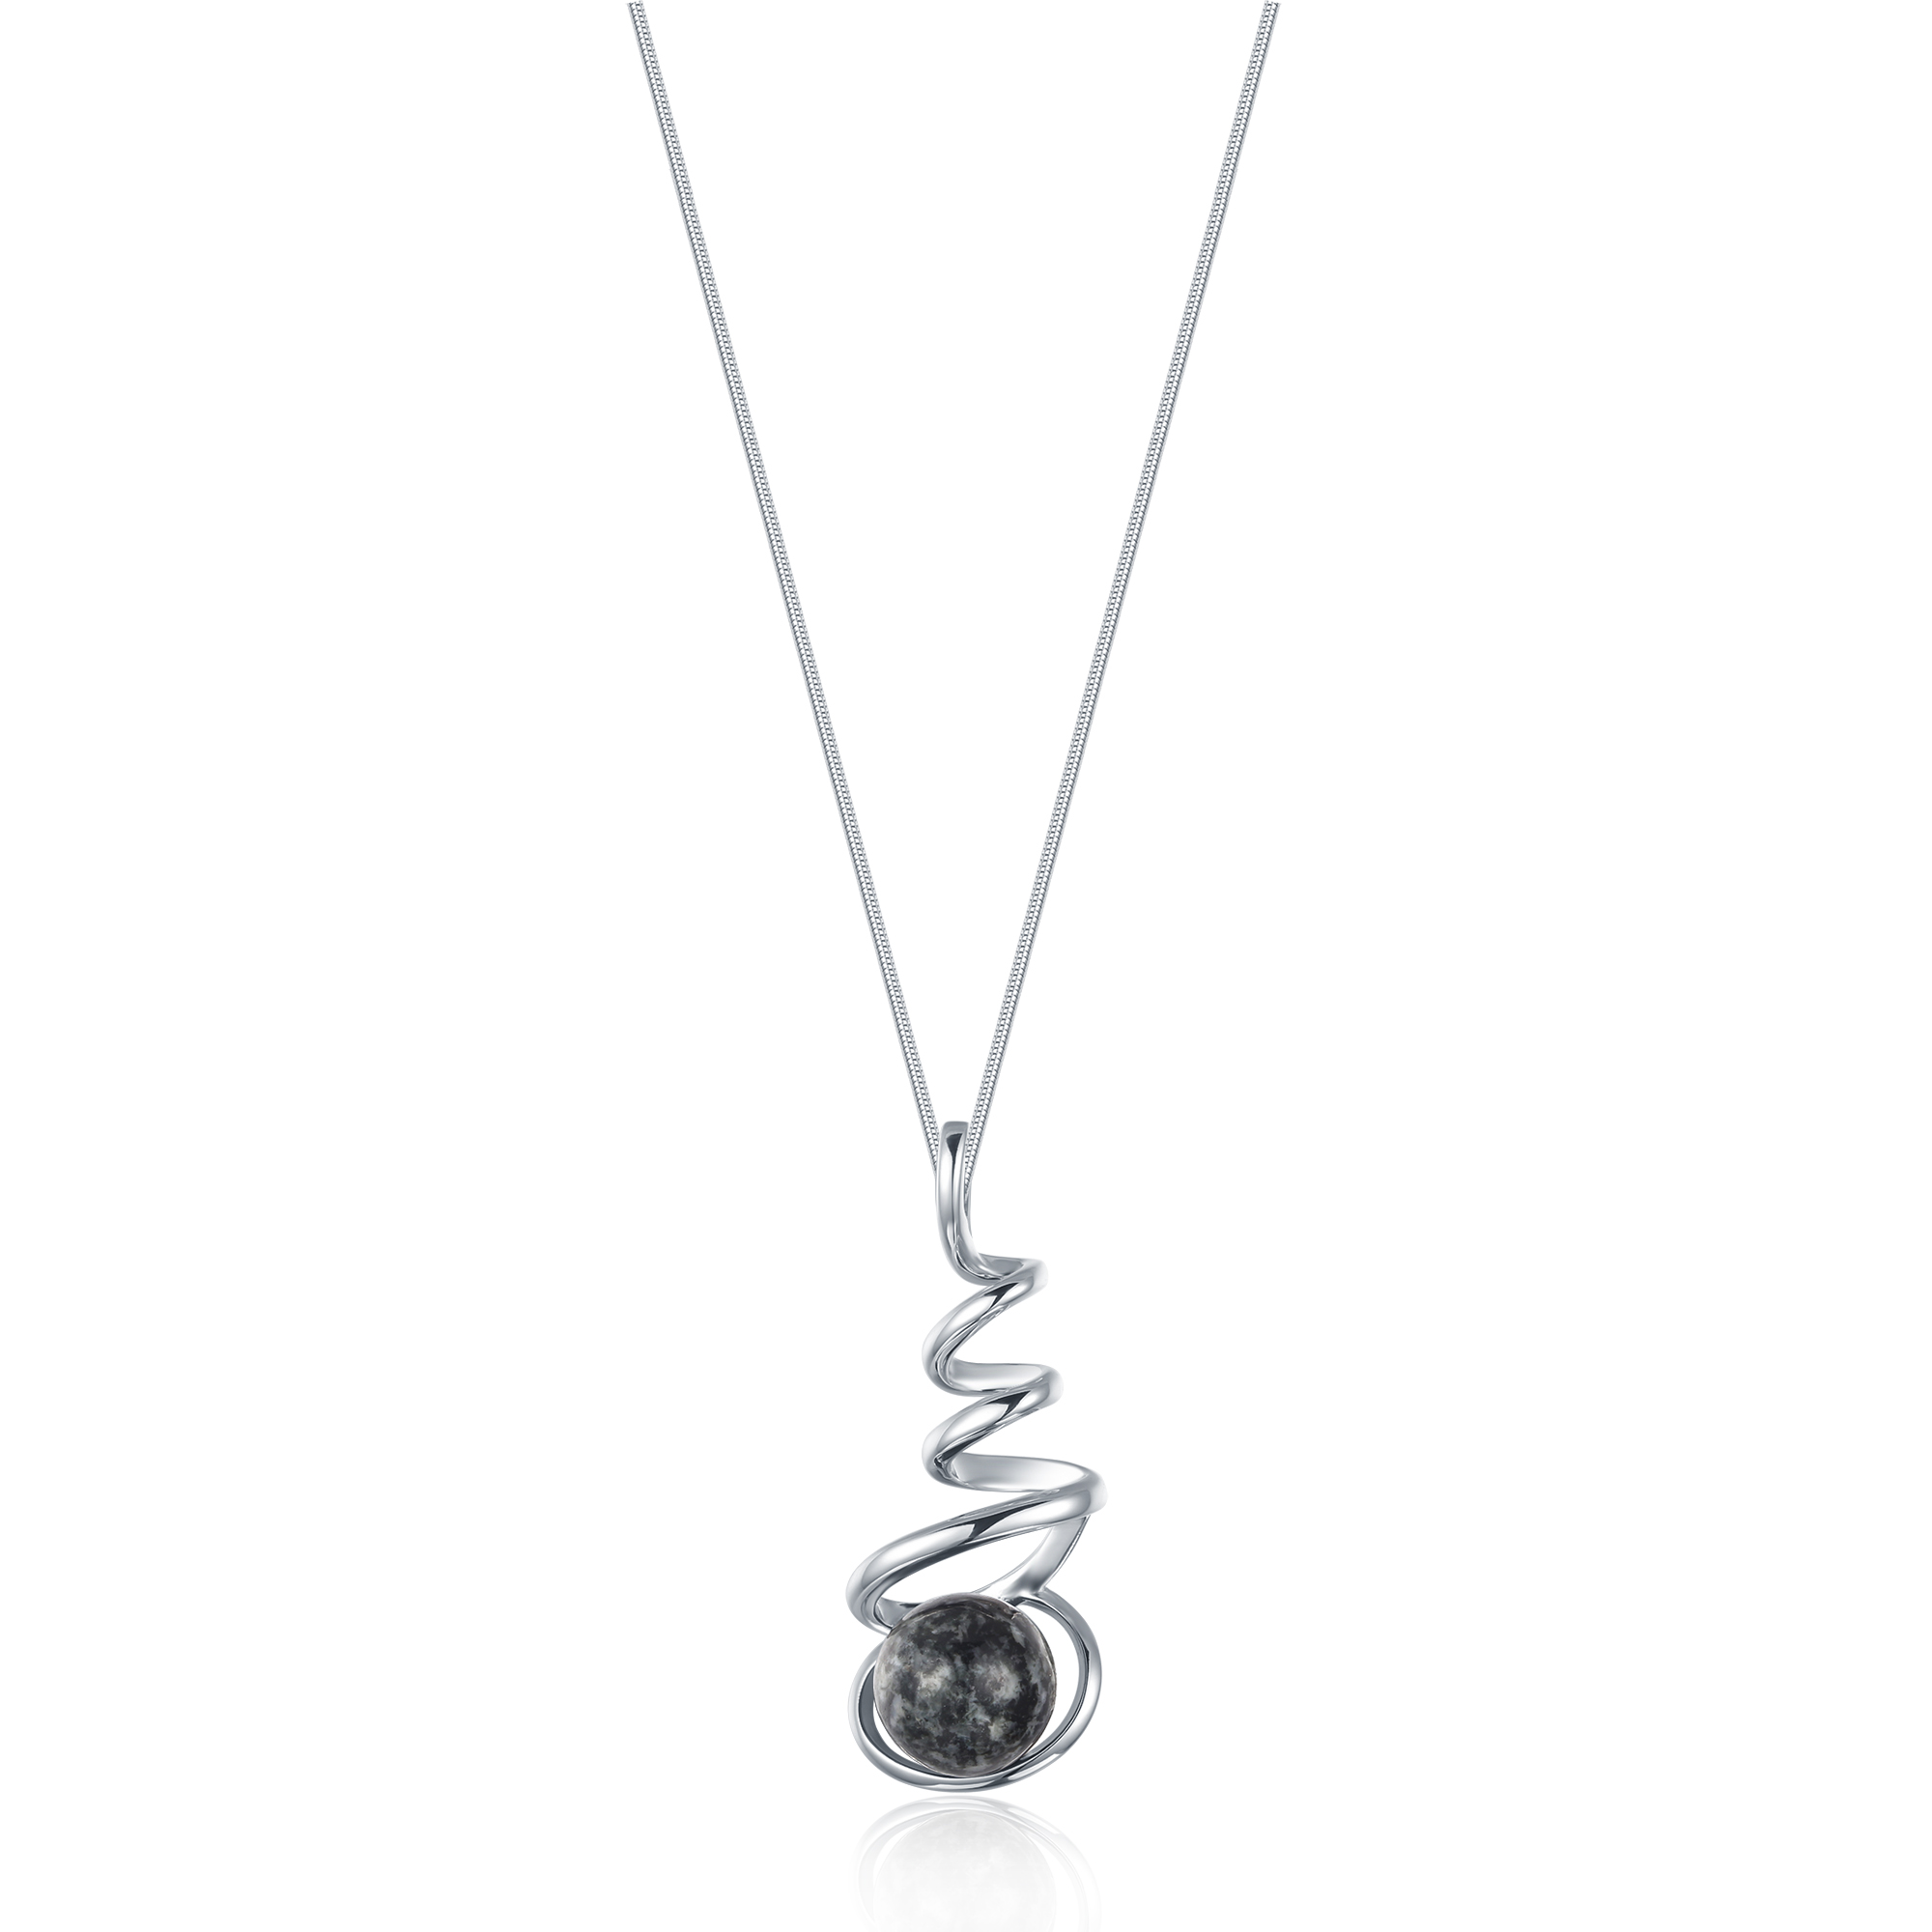 Granite Spiral Necklace